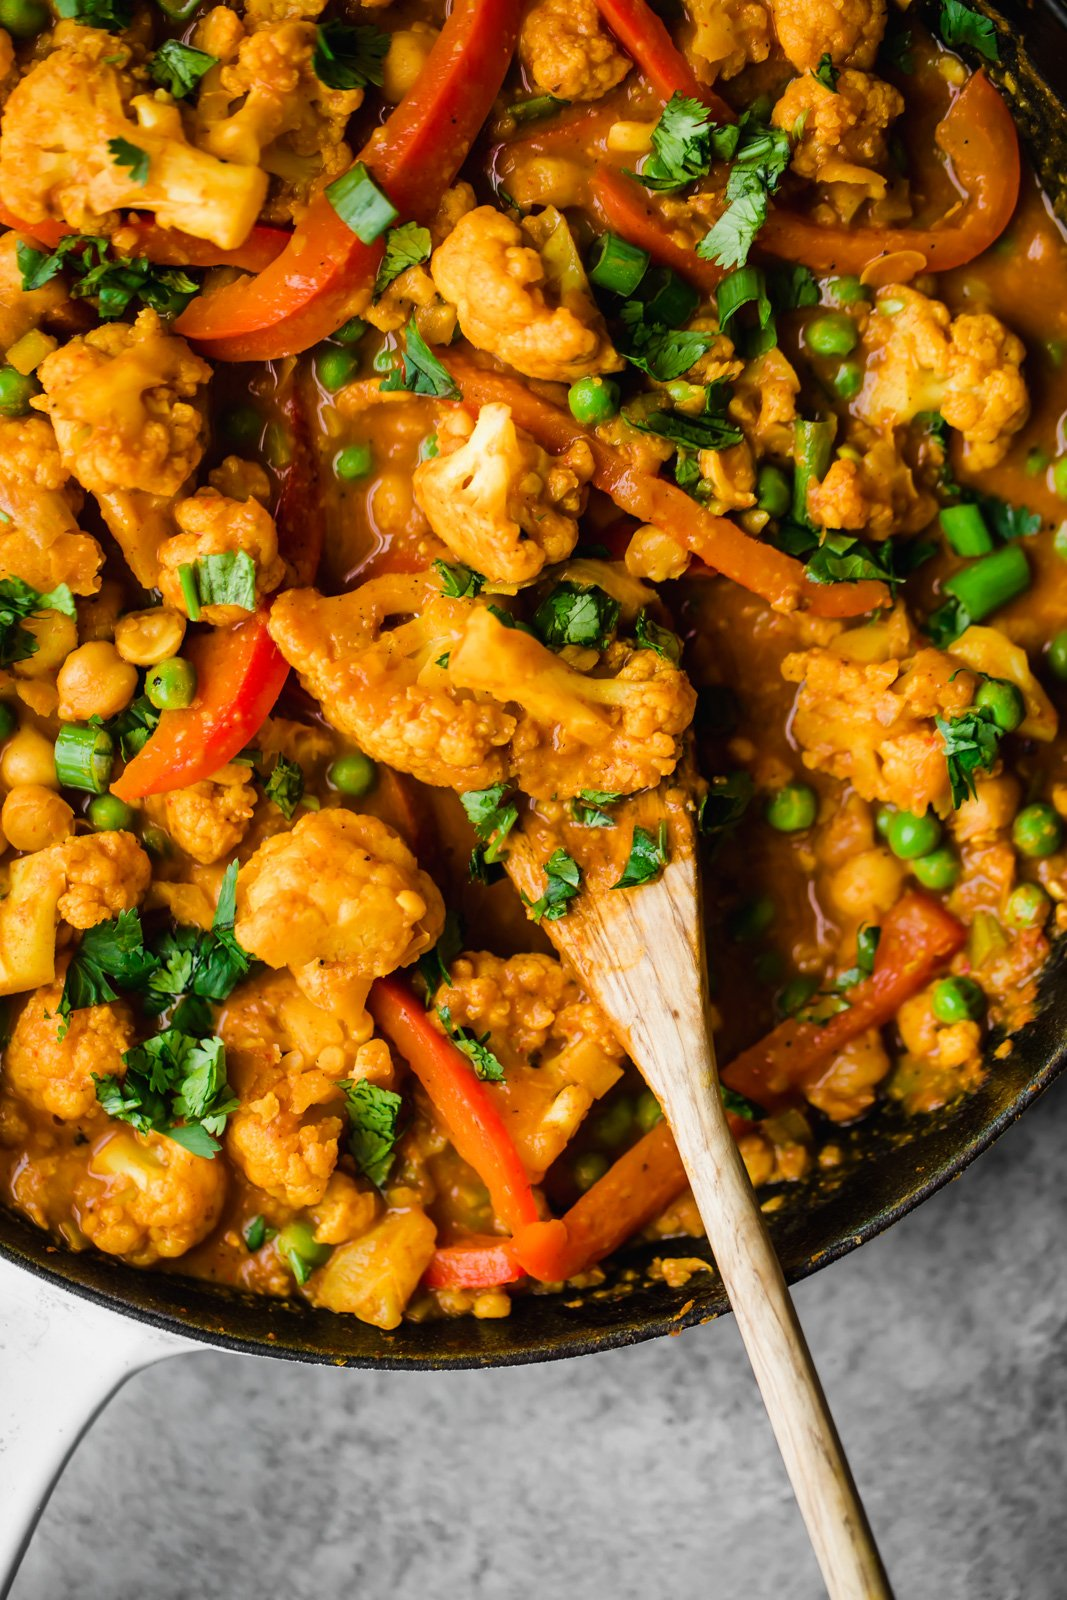 Pan of chickpea curry with cauliflower, red peppers, and peas